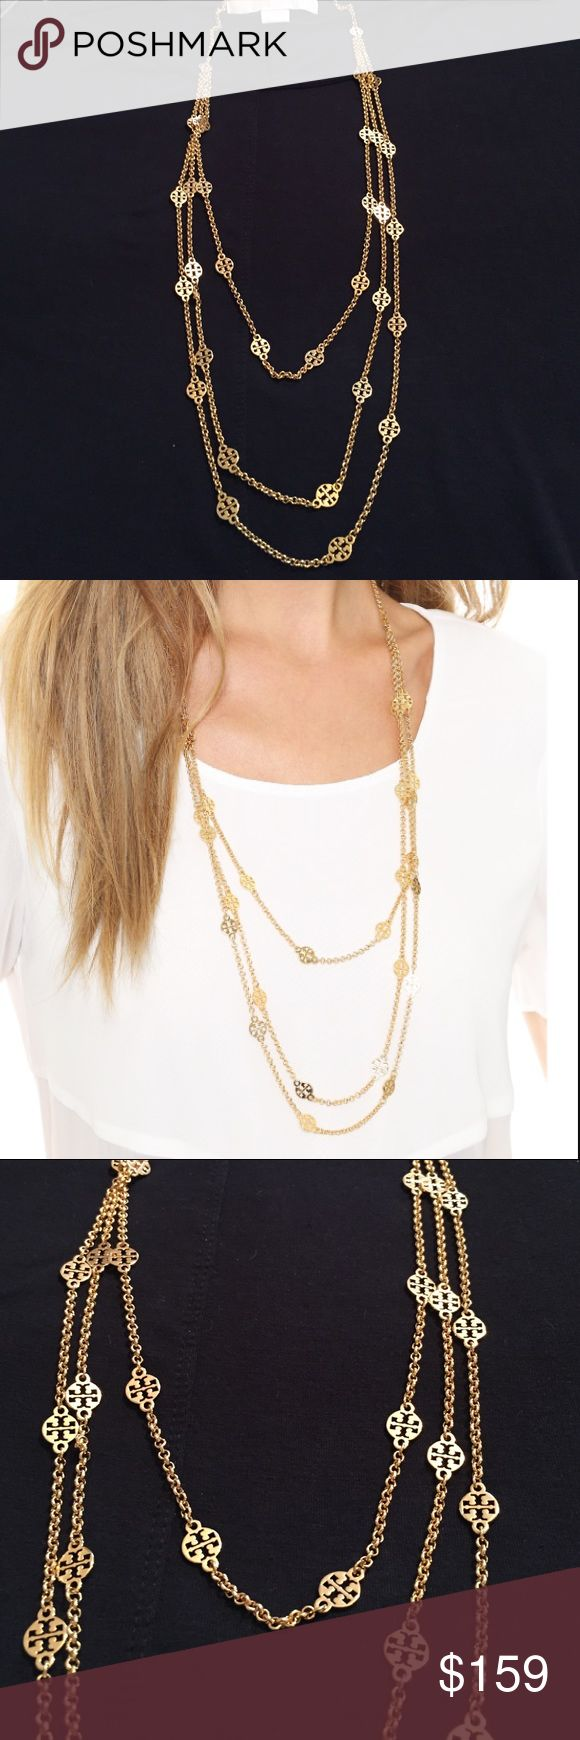 """🆕Tory Burch Multi Strand Logo Gold Necklace. NWT Multi strand Logo necklace features tiny signature Double-T charms, layered on polished gold chains. Great for a casual look or for dress up. Subtle yet elegant. Comes in original TB velvet blue pouch. New, with tag, never worn. Presently on Tory Burch website for $195.00. Length: 34"""" total length. Tory Burch Jewelry Necklaces"""